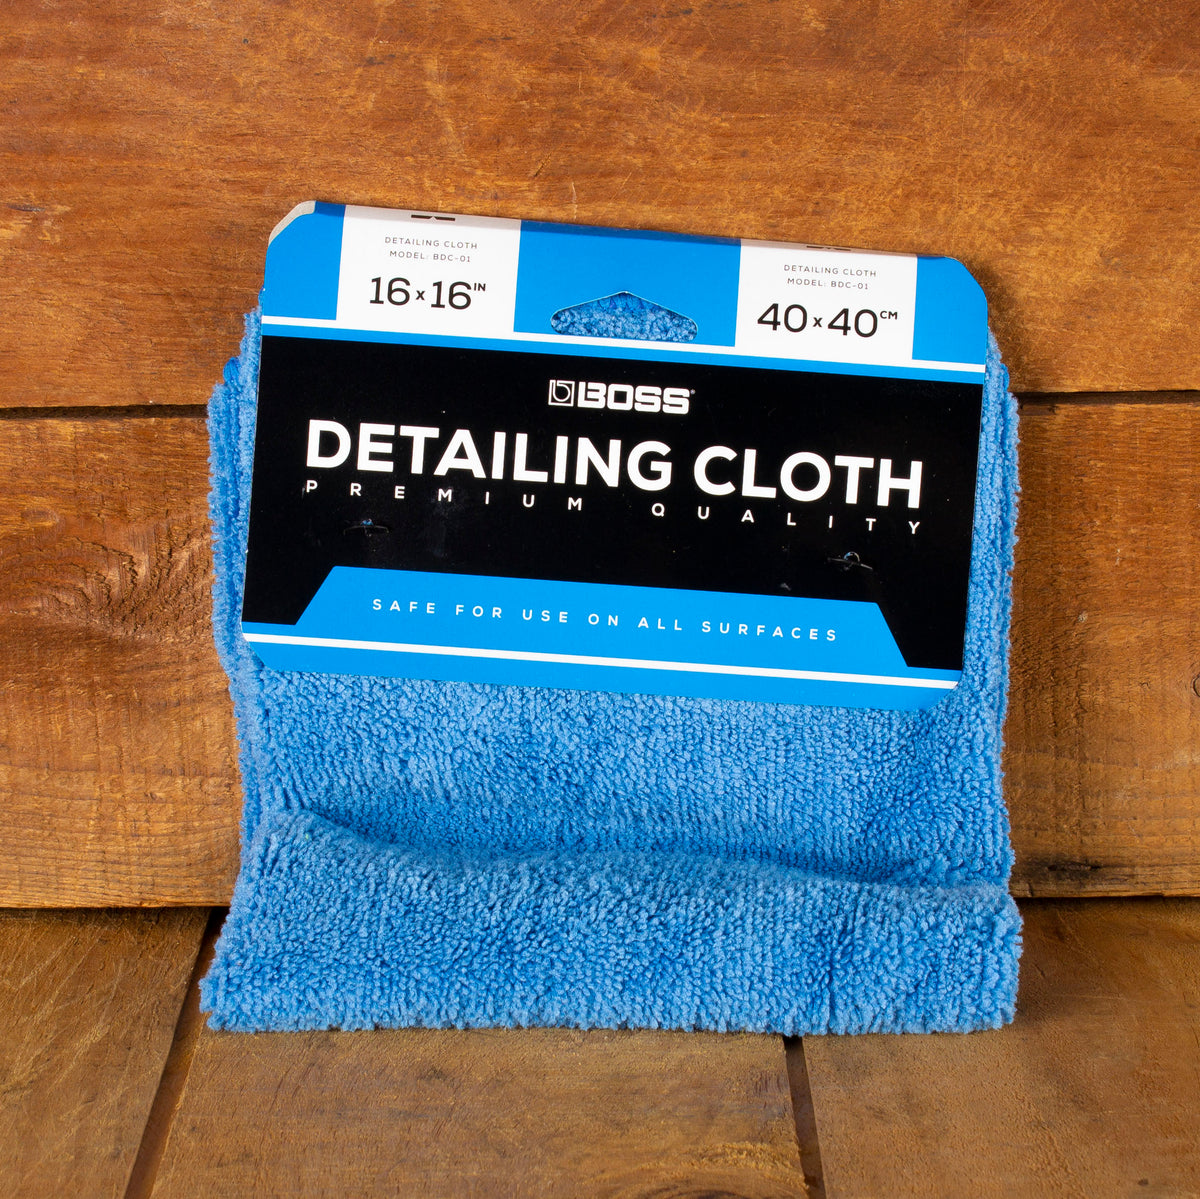 BOSS Detailing Cloth